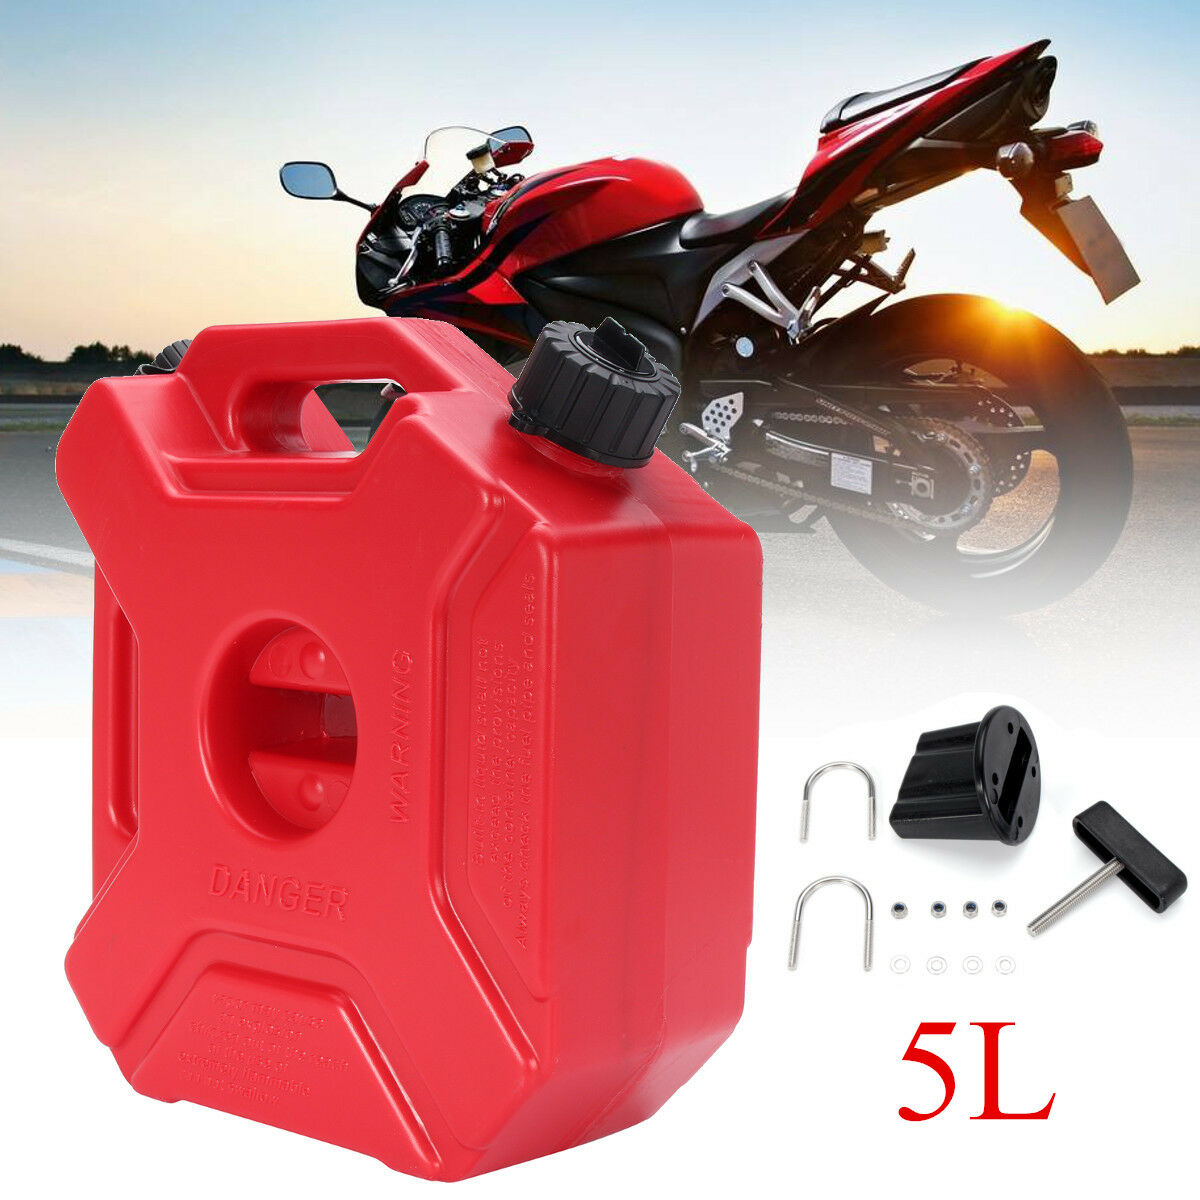 5L Red Plastic Garden Camping Caravan Water Carrier Fluid Jerry Can Container